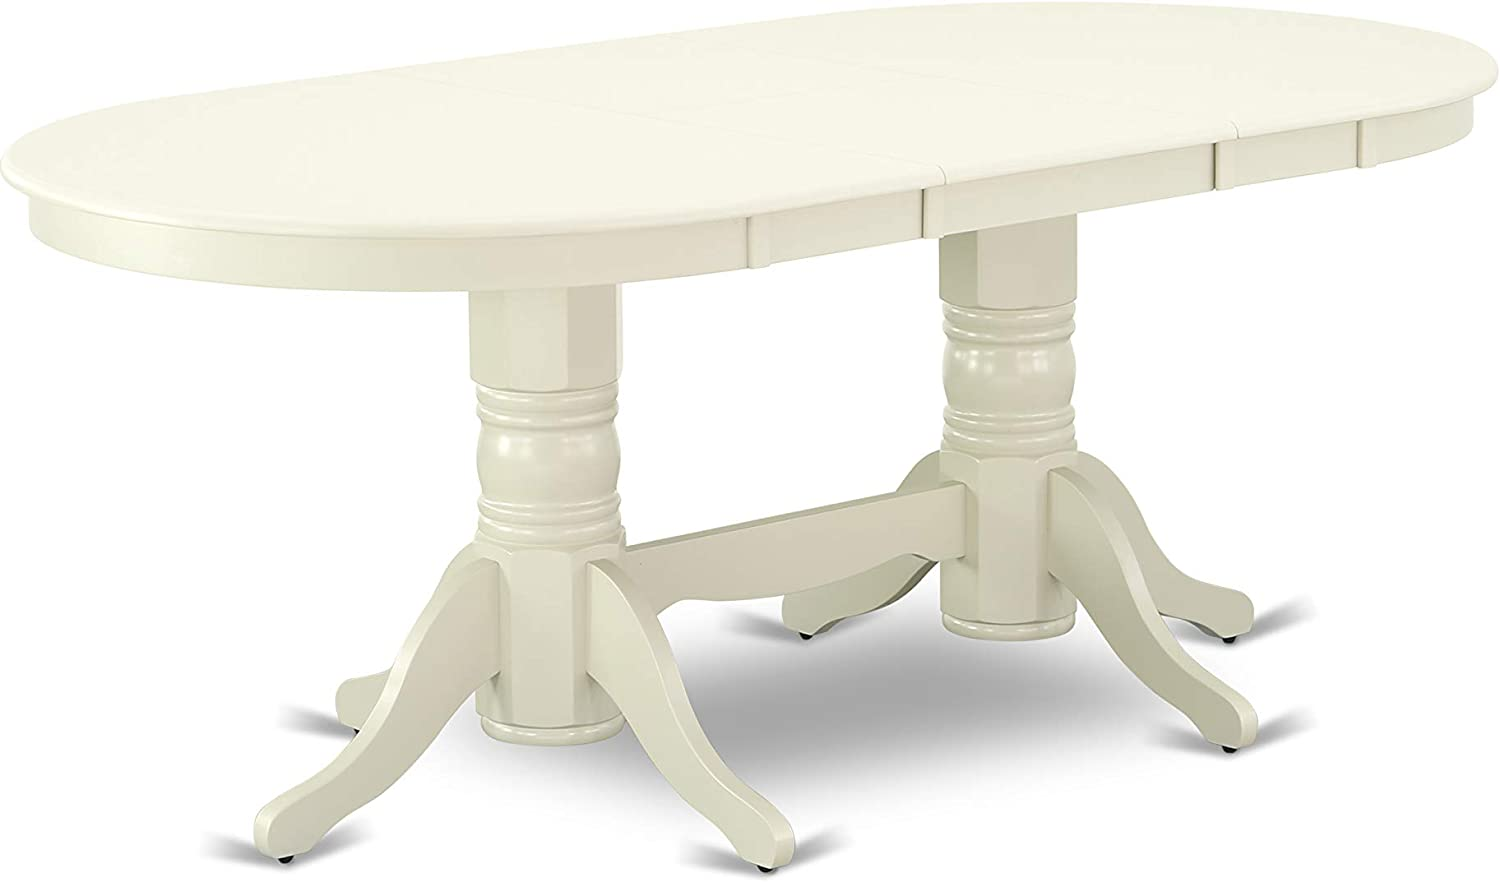 """VAT-LWH-TP Vancouver Oval Double Pedestal dining room Table with 17"""" Butterfly Leaf in Linen White Finish"""